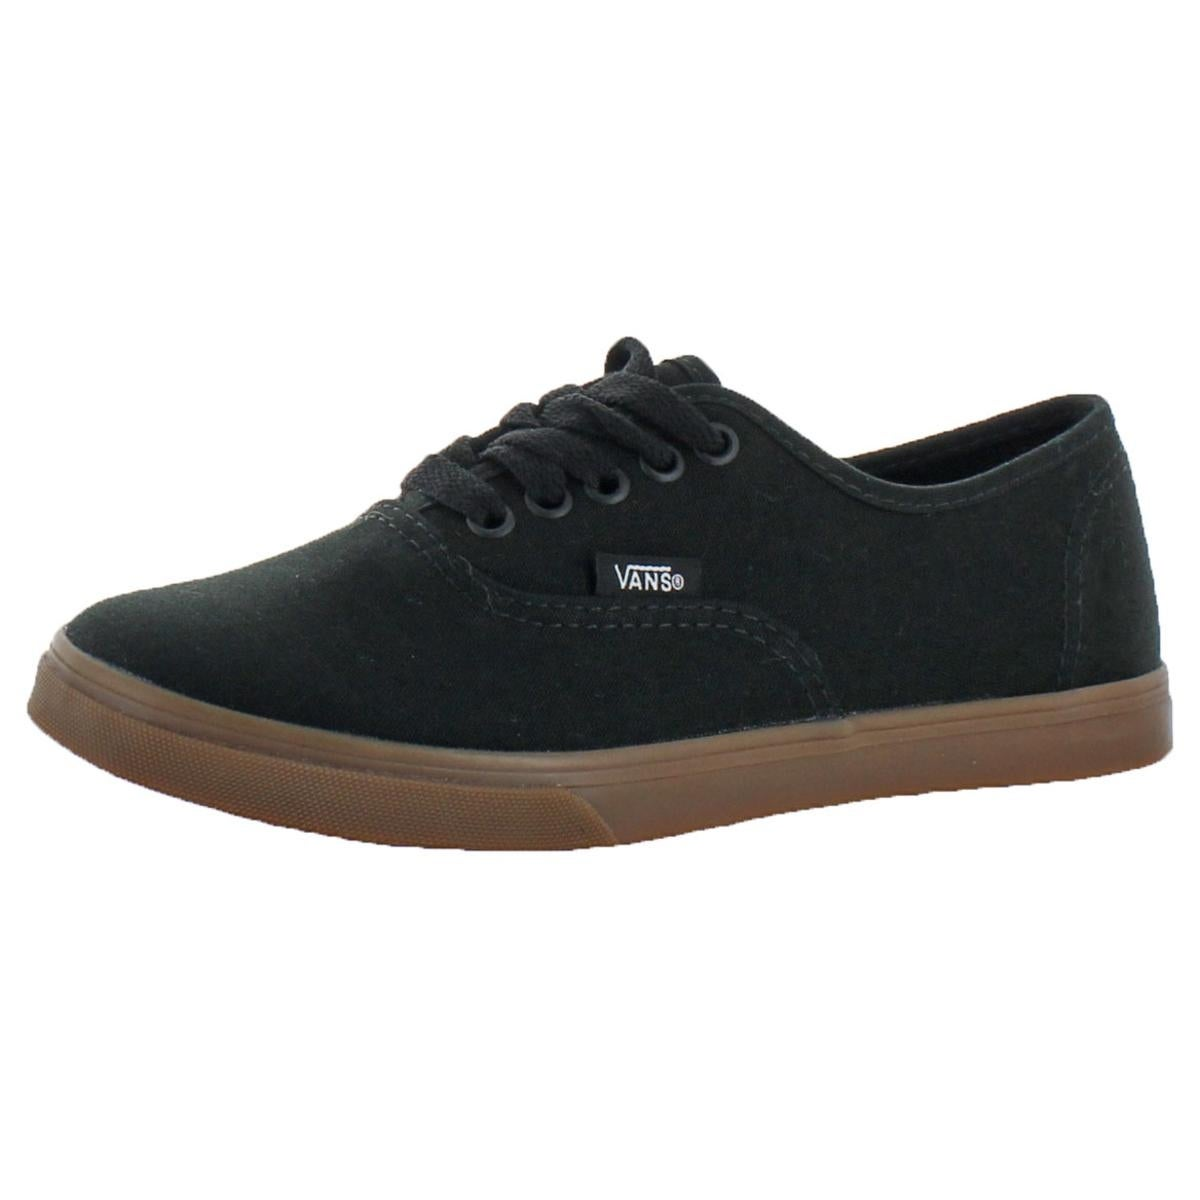 24b4ae6ad9e Shop Vans Womens Authentic Lo Pro Skate Shoes Classic Low Top - Free  Shipping On Orders Over  45 - Overstock - 22862254